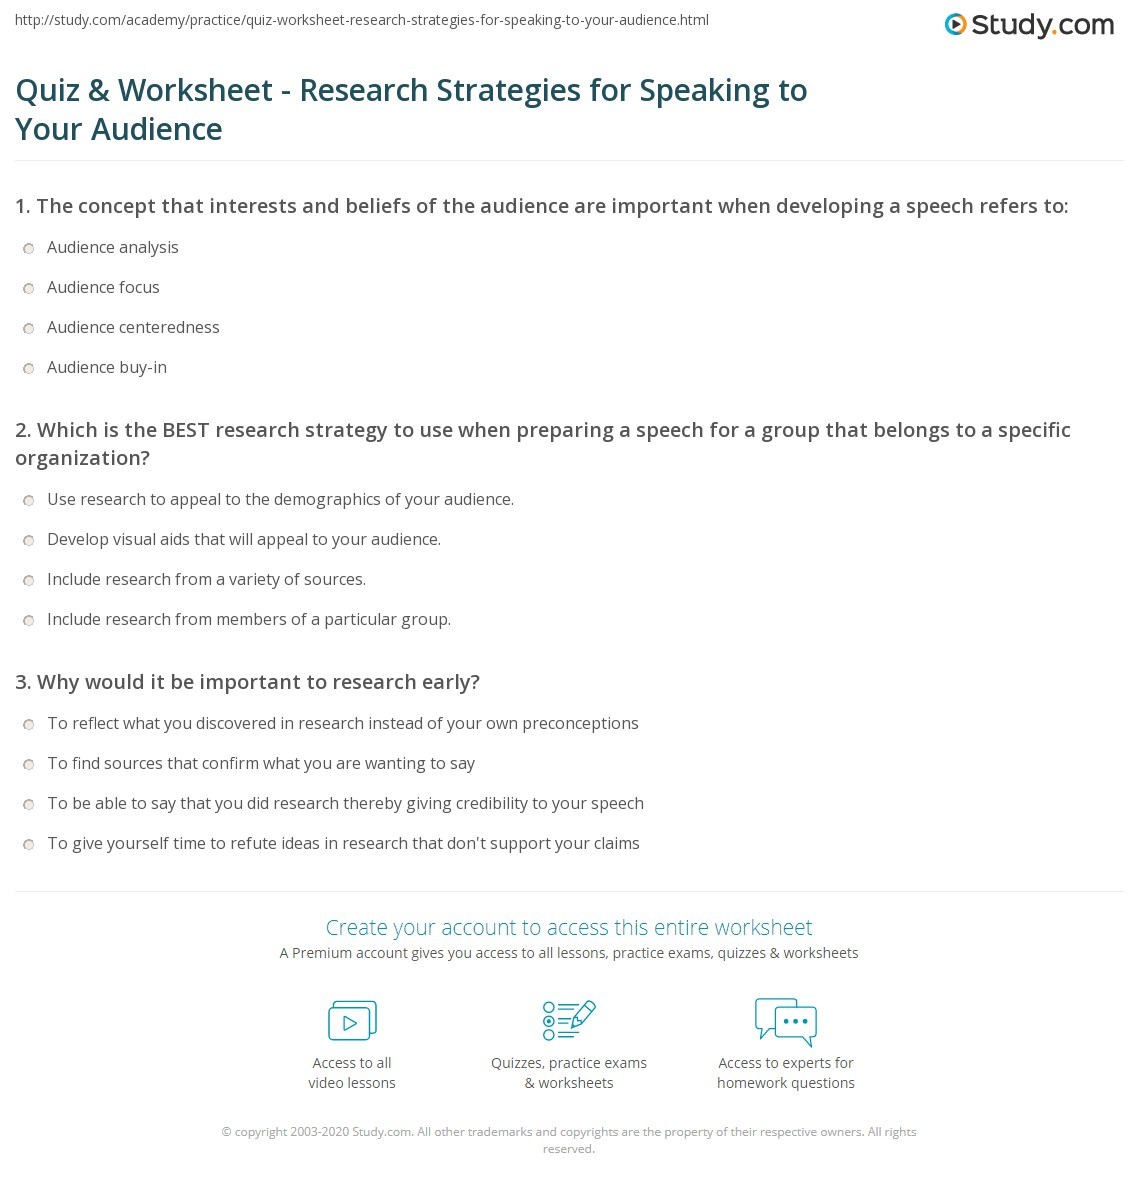 quiz worksheet research strategies for speaking to your audience. Black Bedroom Furniture Sets. Home Design Ideas